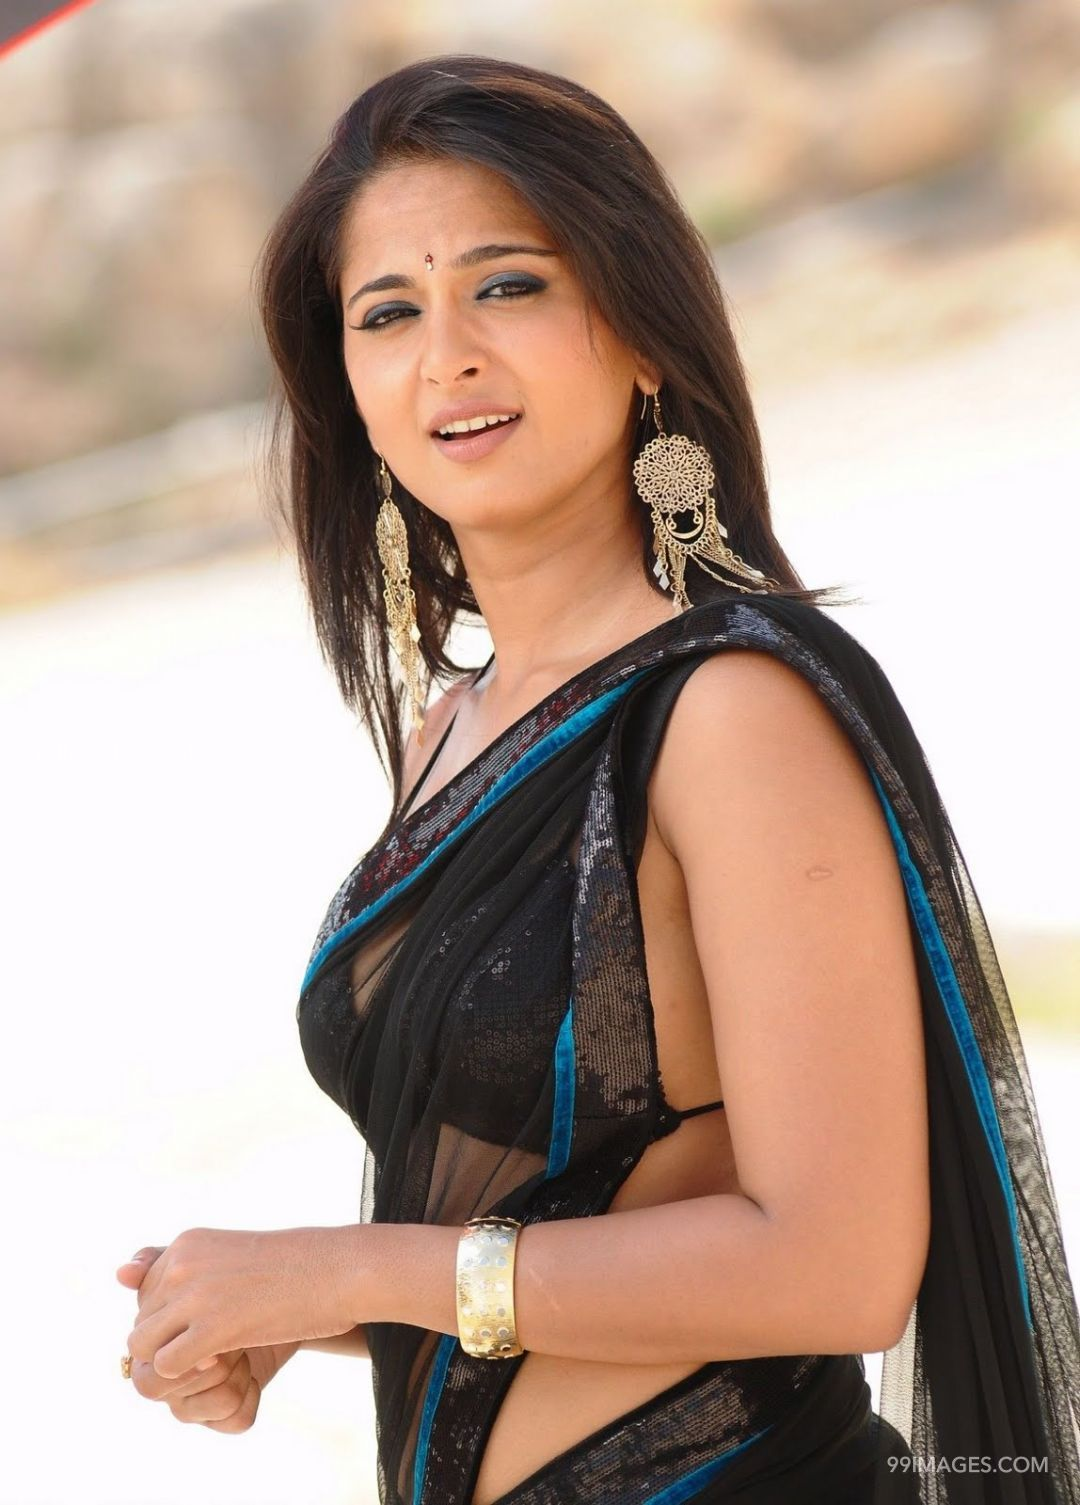 Anushka Shetty Beautiful HD Photoshoot Stills (1080p) (3639) - Anushka Shetty